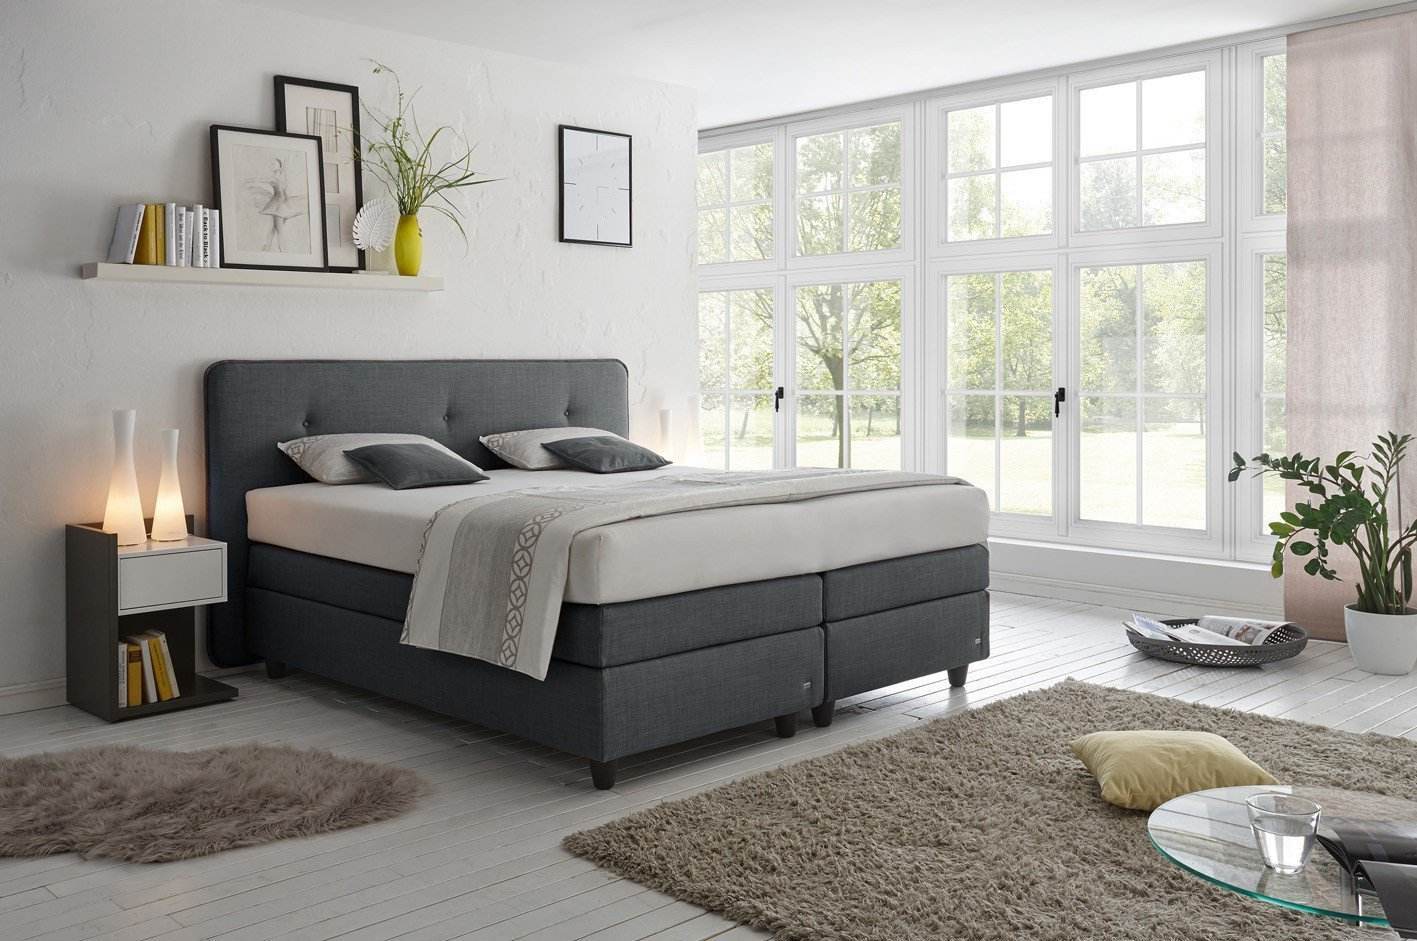 ruf modell vitessa boxspringbett in anthrazit m bel letz ihr online shop. Black Bedroom Furniture Sets. Home Design Ideas